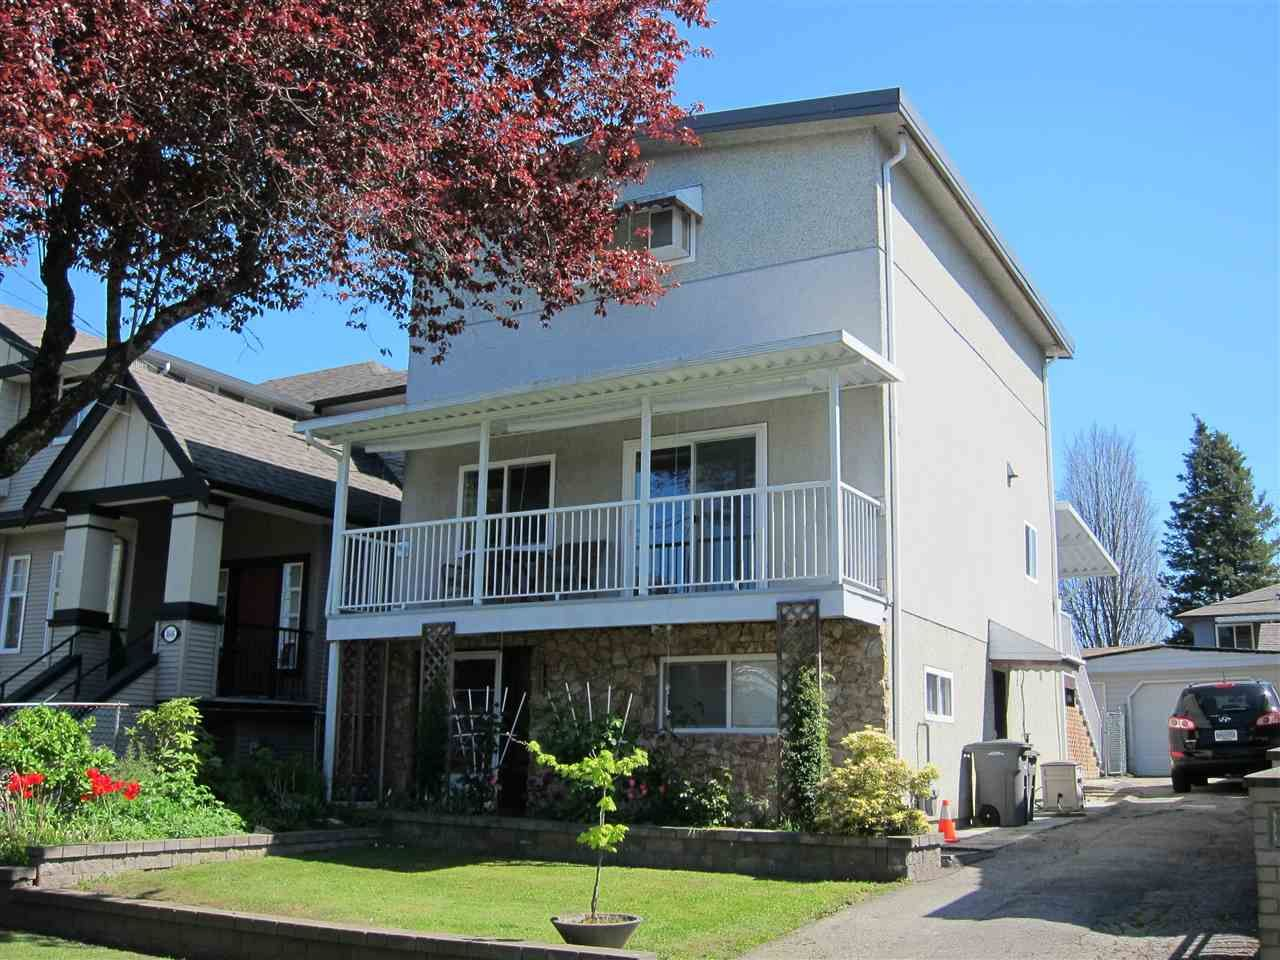 Main Photo: 4656 RAVINE Street in Vancouver: Collingwood VE House for sale (Vancouver East)  : MLS®# R2107811